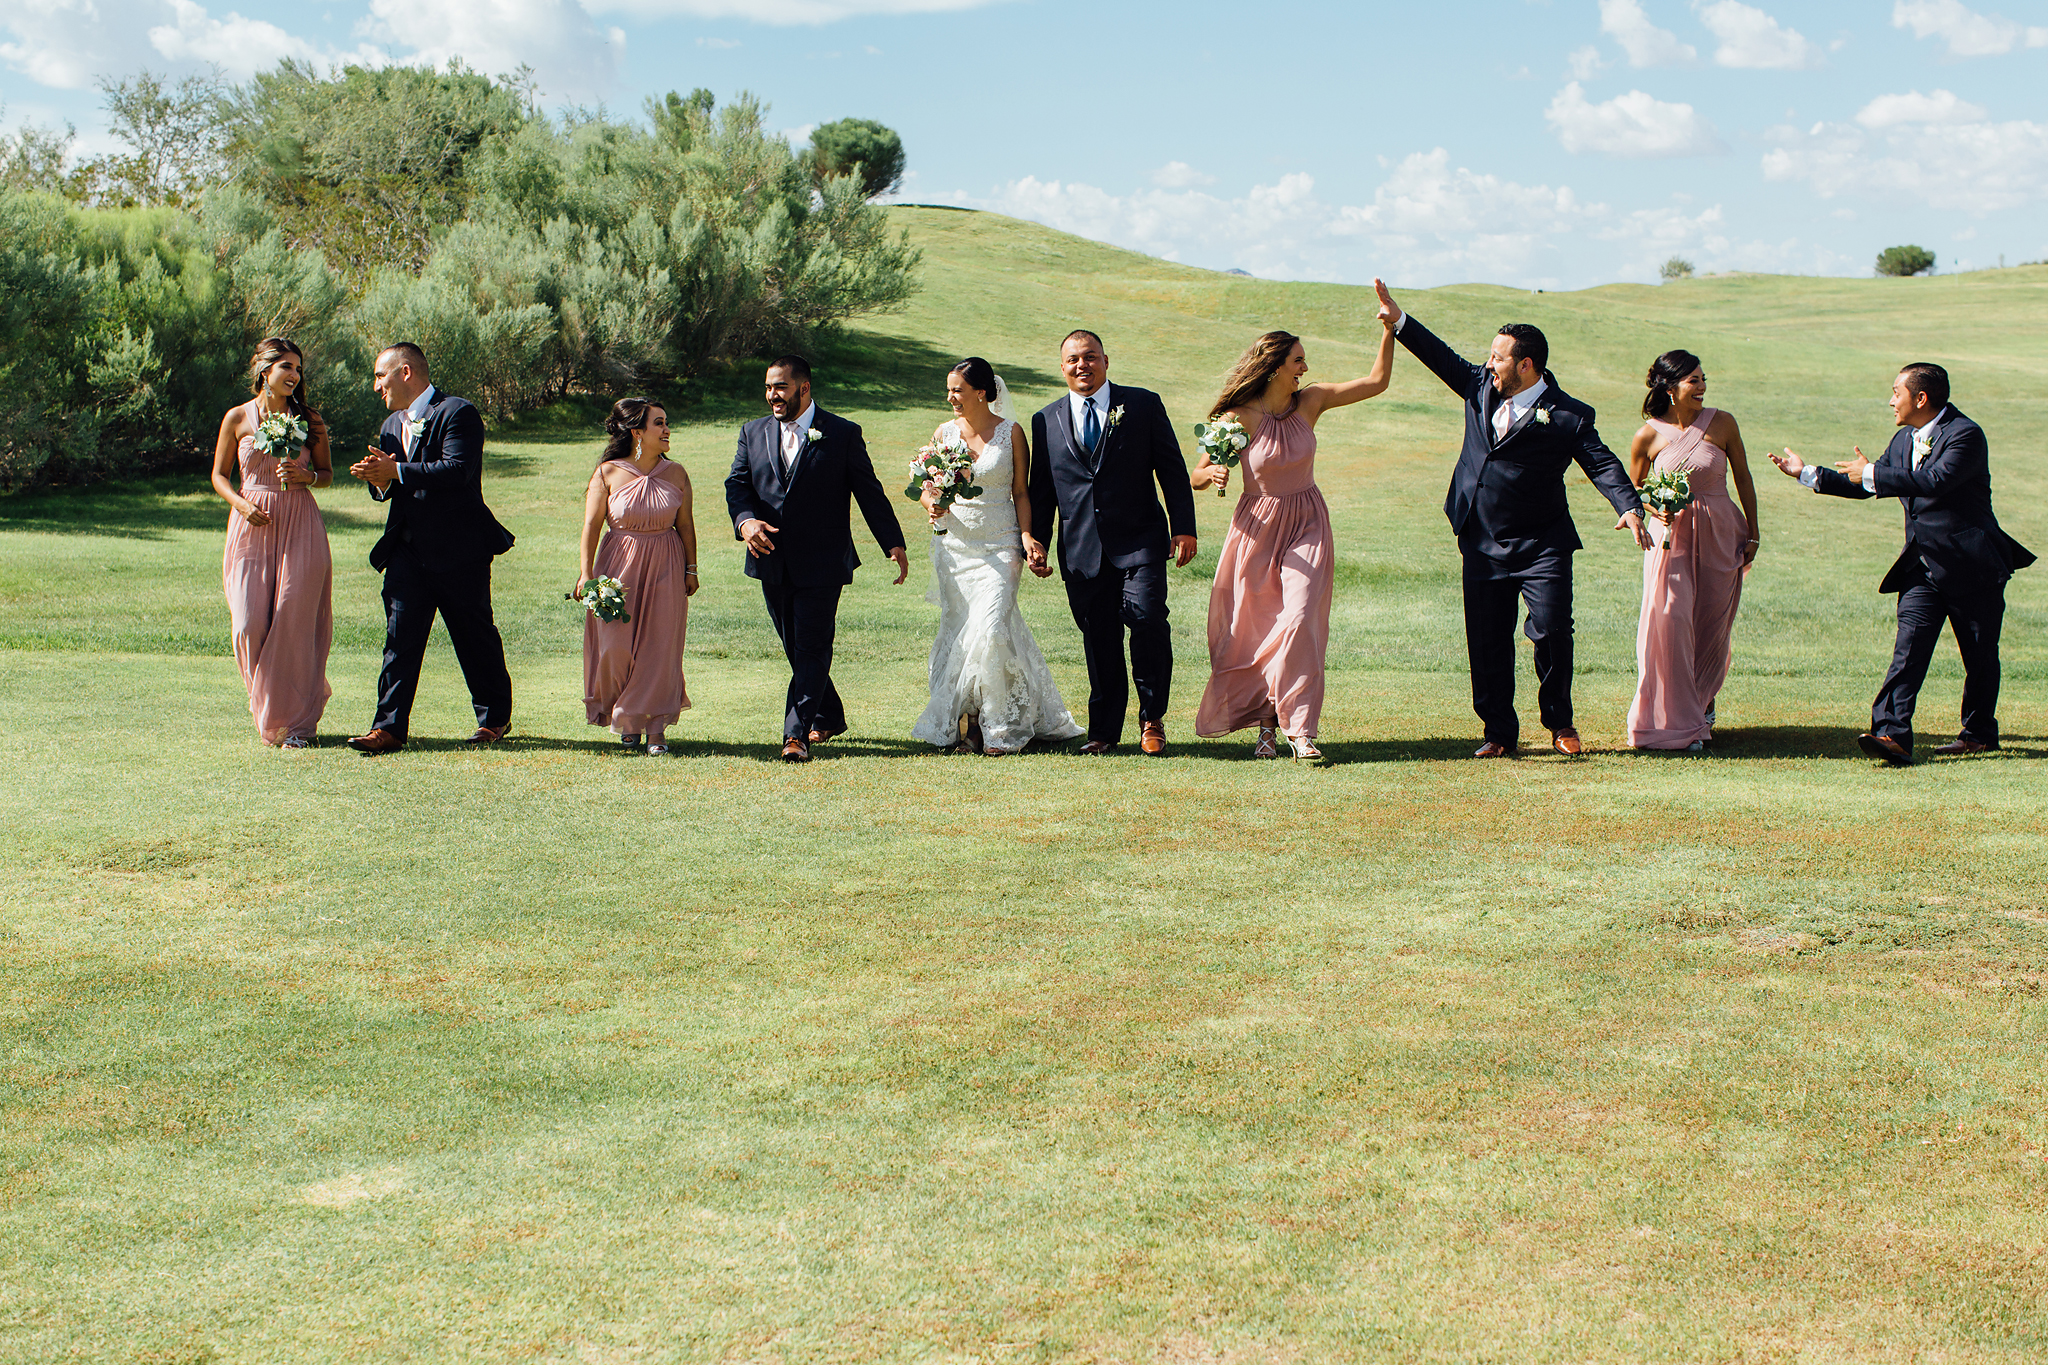 sonoma-ranch-wedding_15.jpg